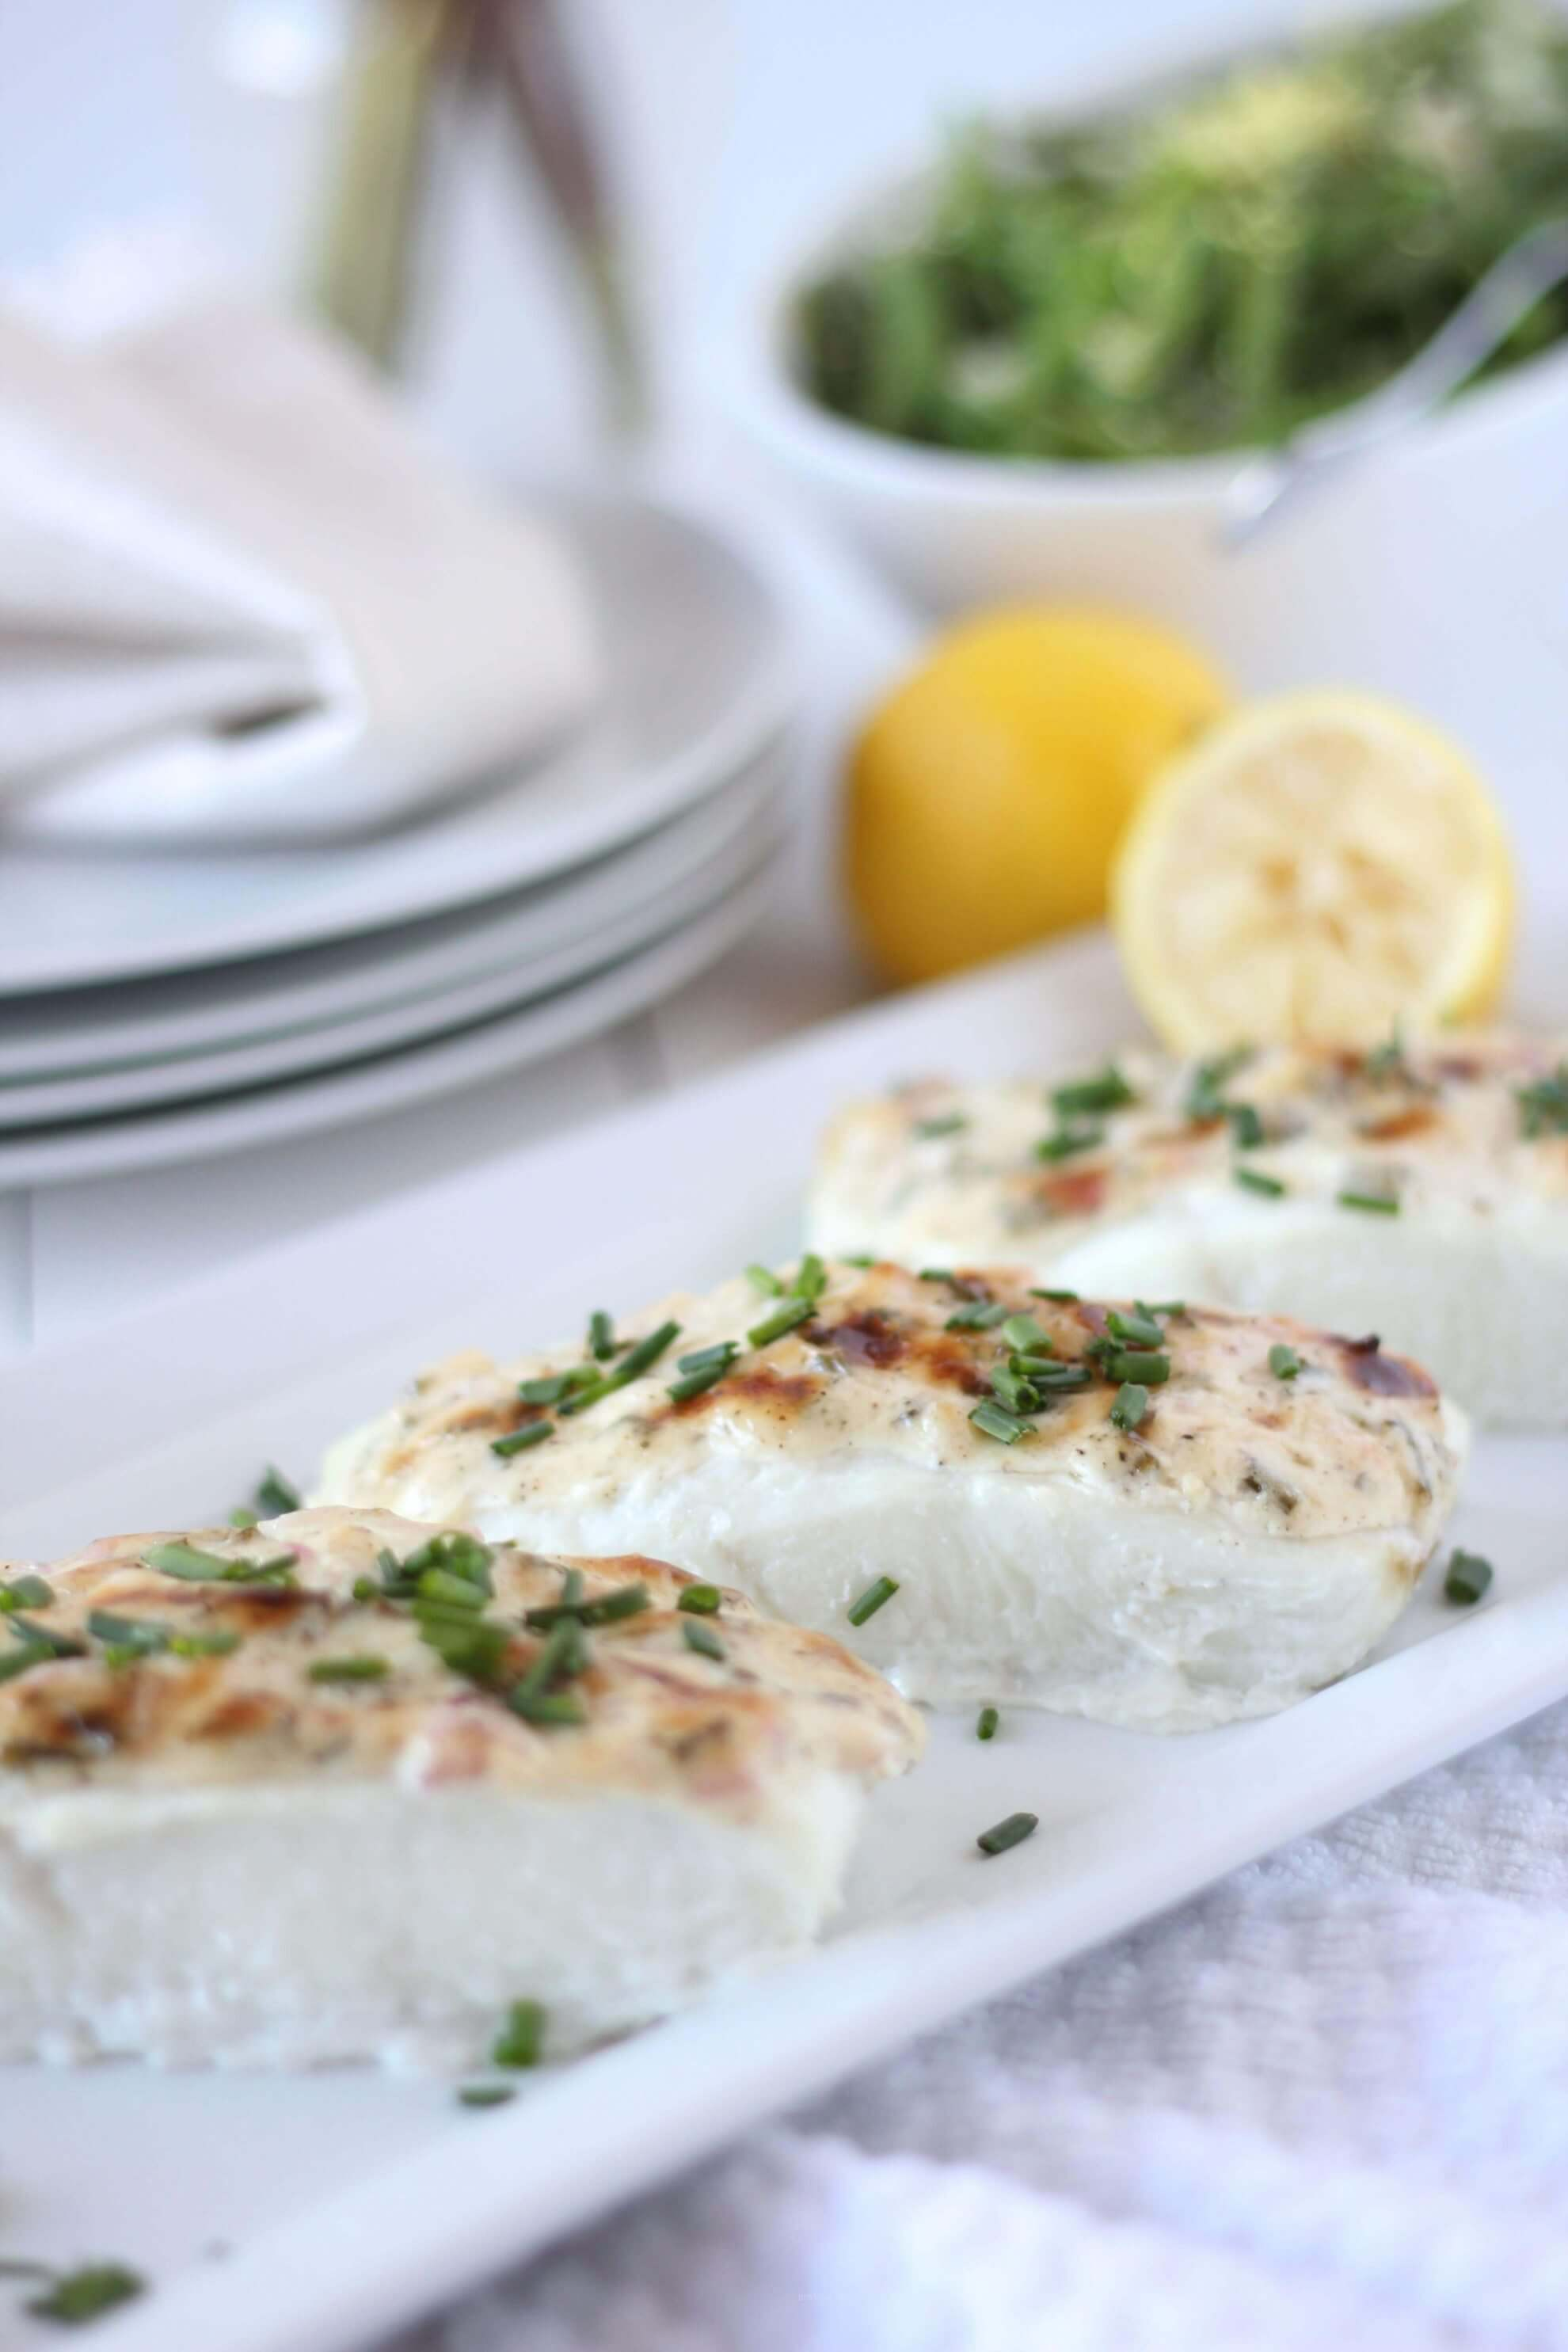 (gluten-free, paleo) Baked Halibut with Herbed Mayonnaise | www.downshiftology.com